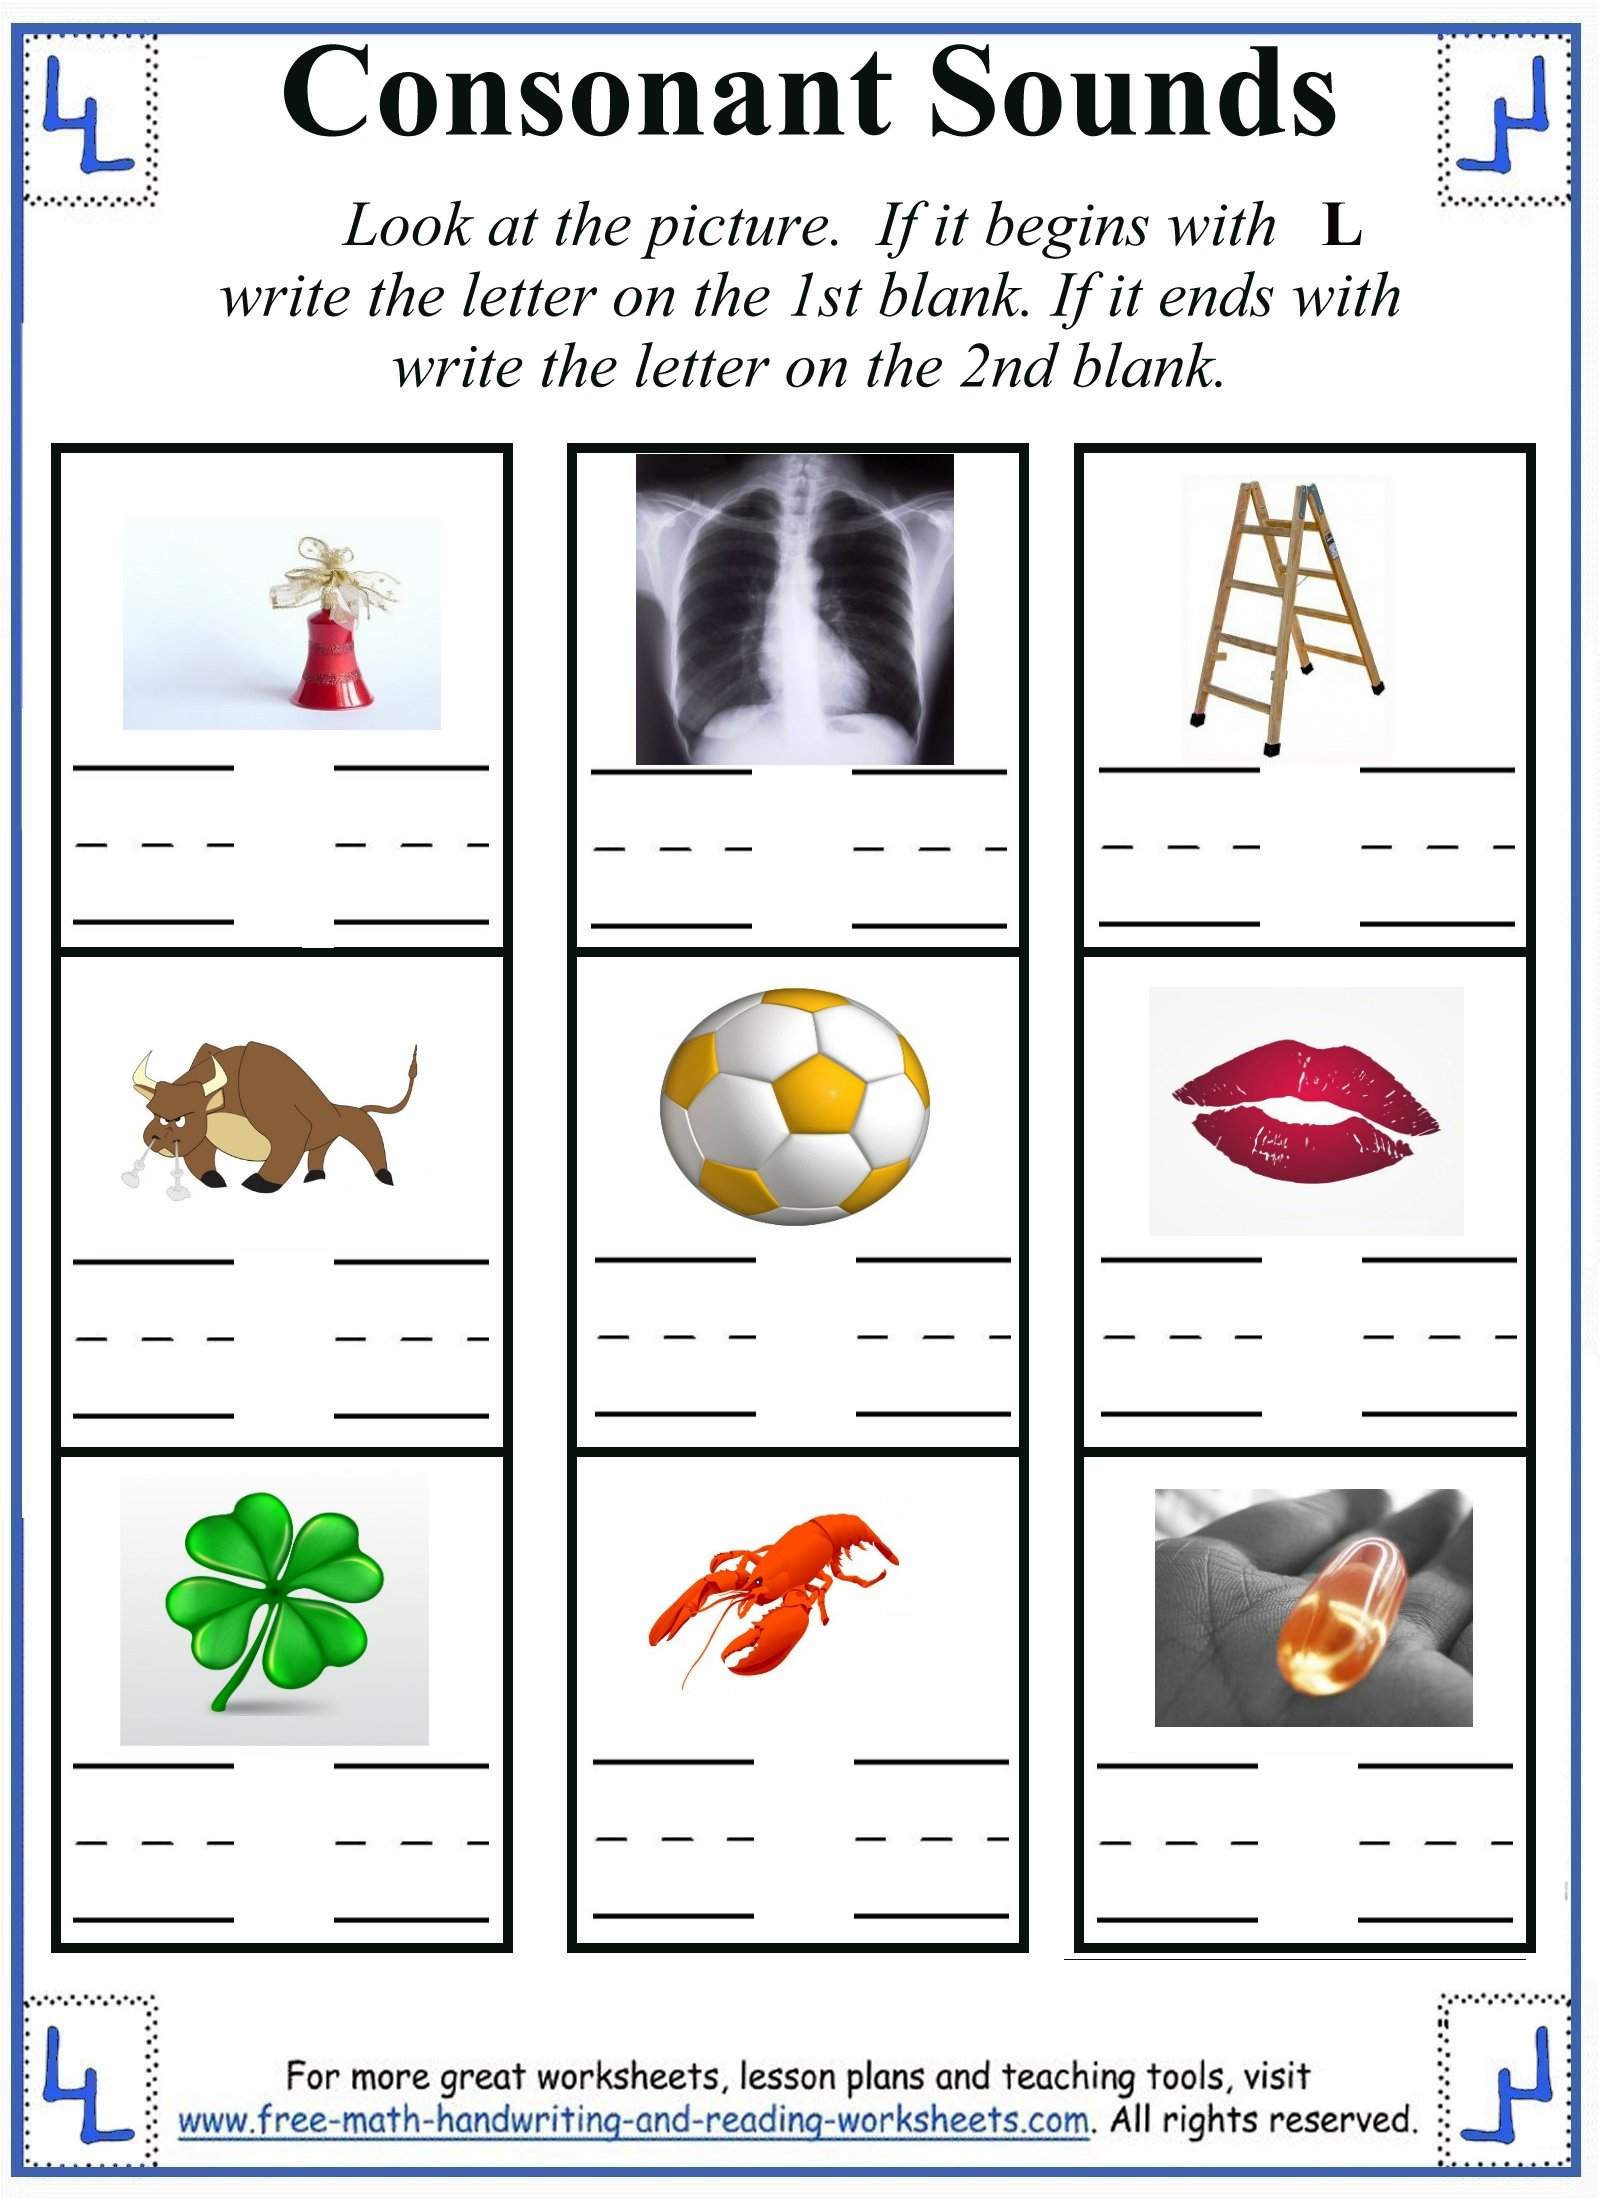 Consonant Letters Worksheets For Kindergarten